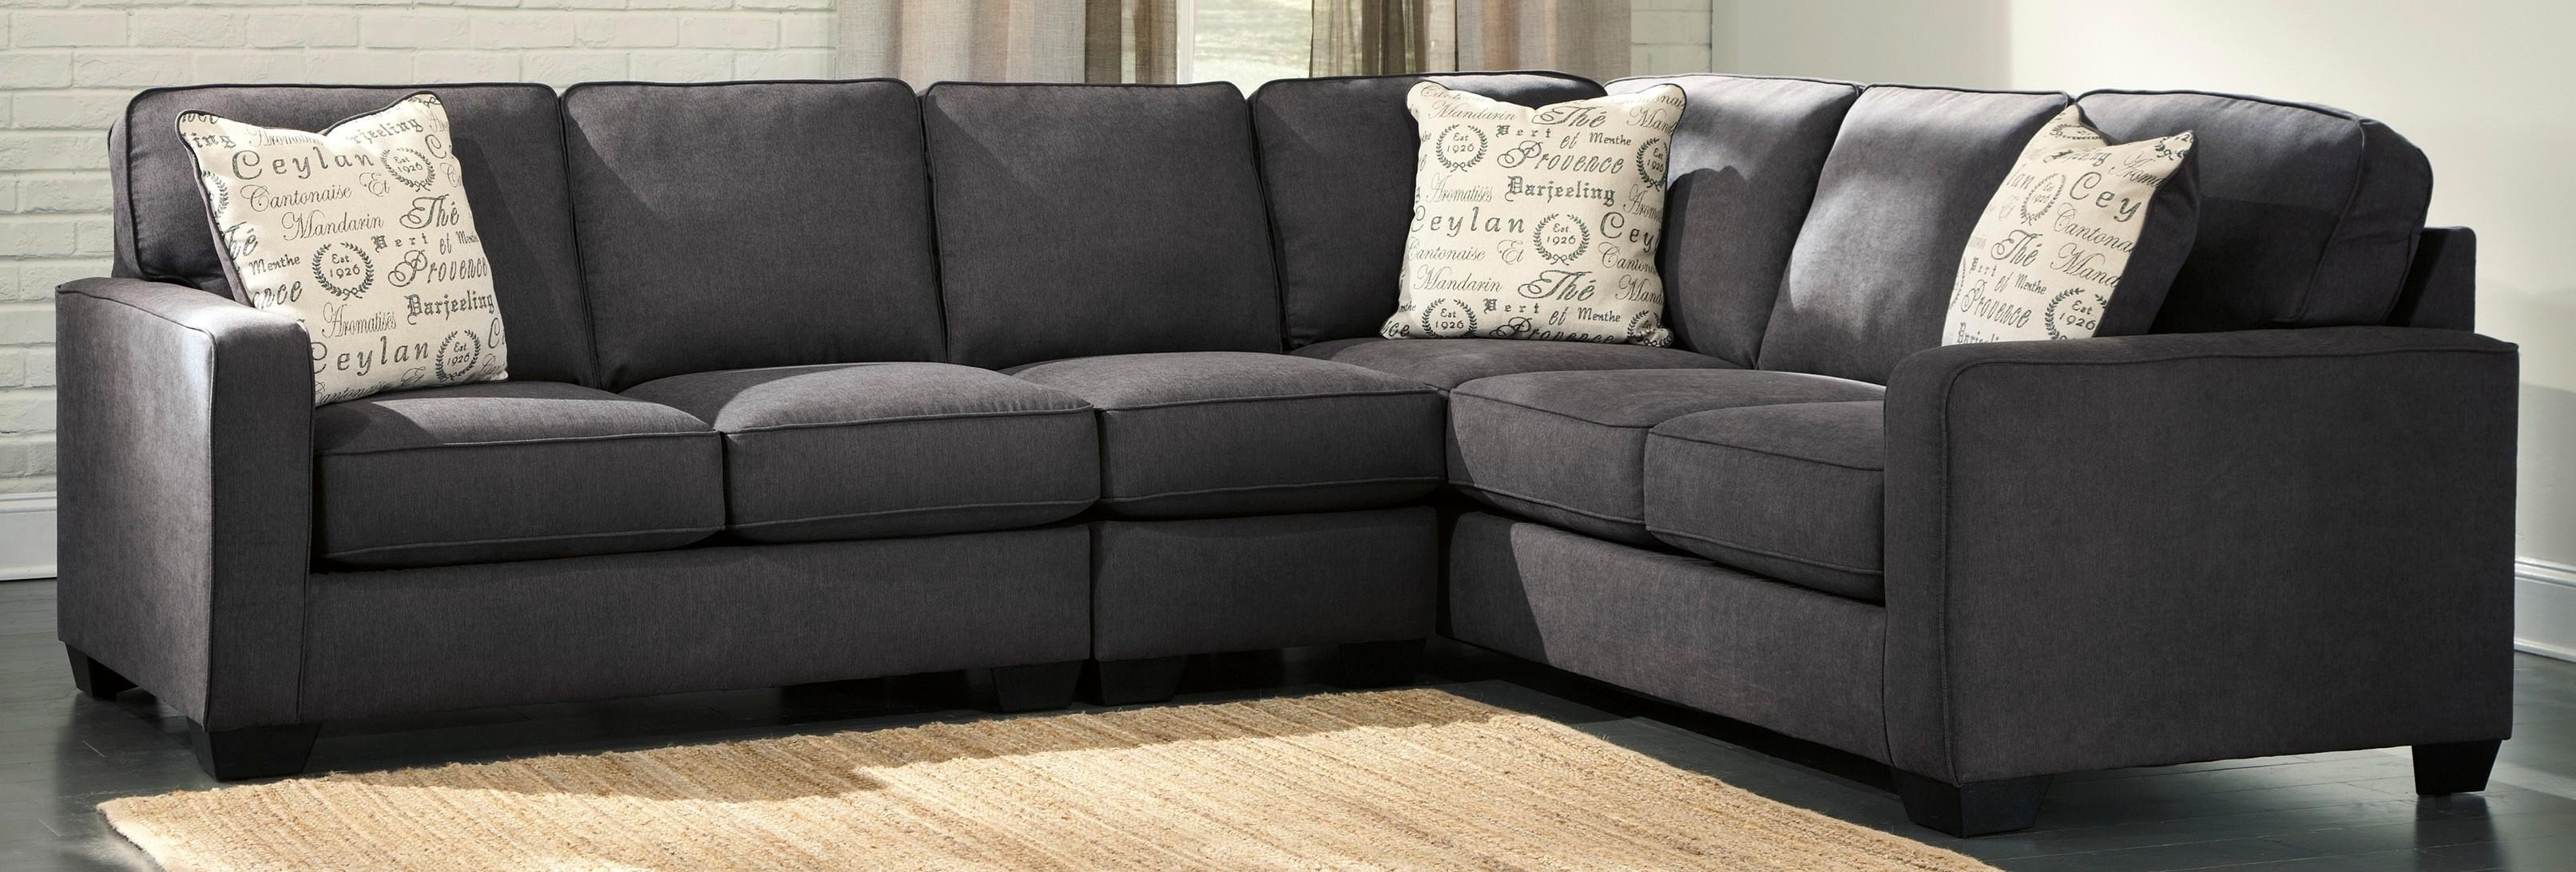 Interior: Gorgeous Lady Charcoal Sectional For Living Room With Regard To Individual Piece Sectional Sofas (View 8 of 20)